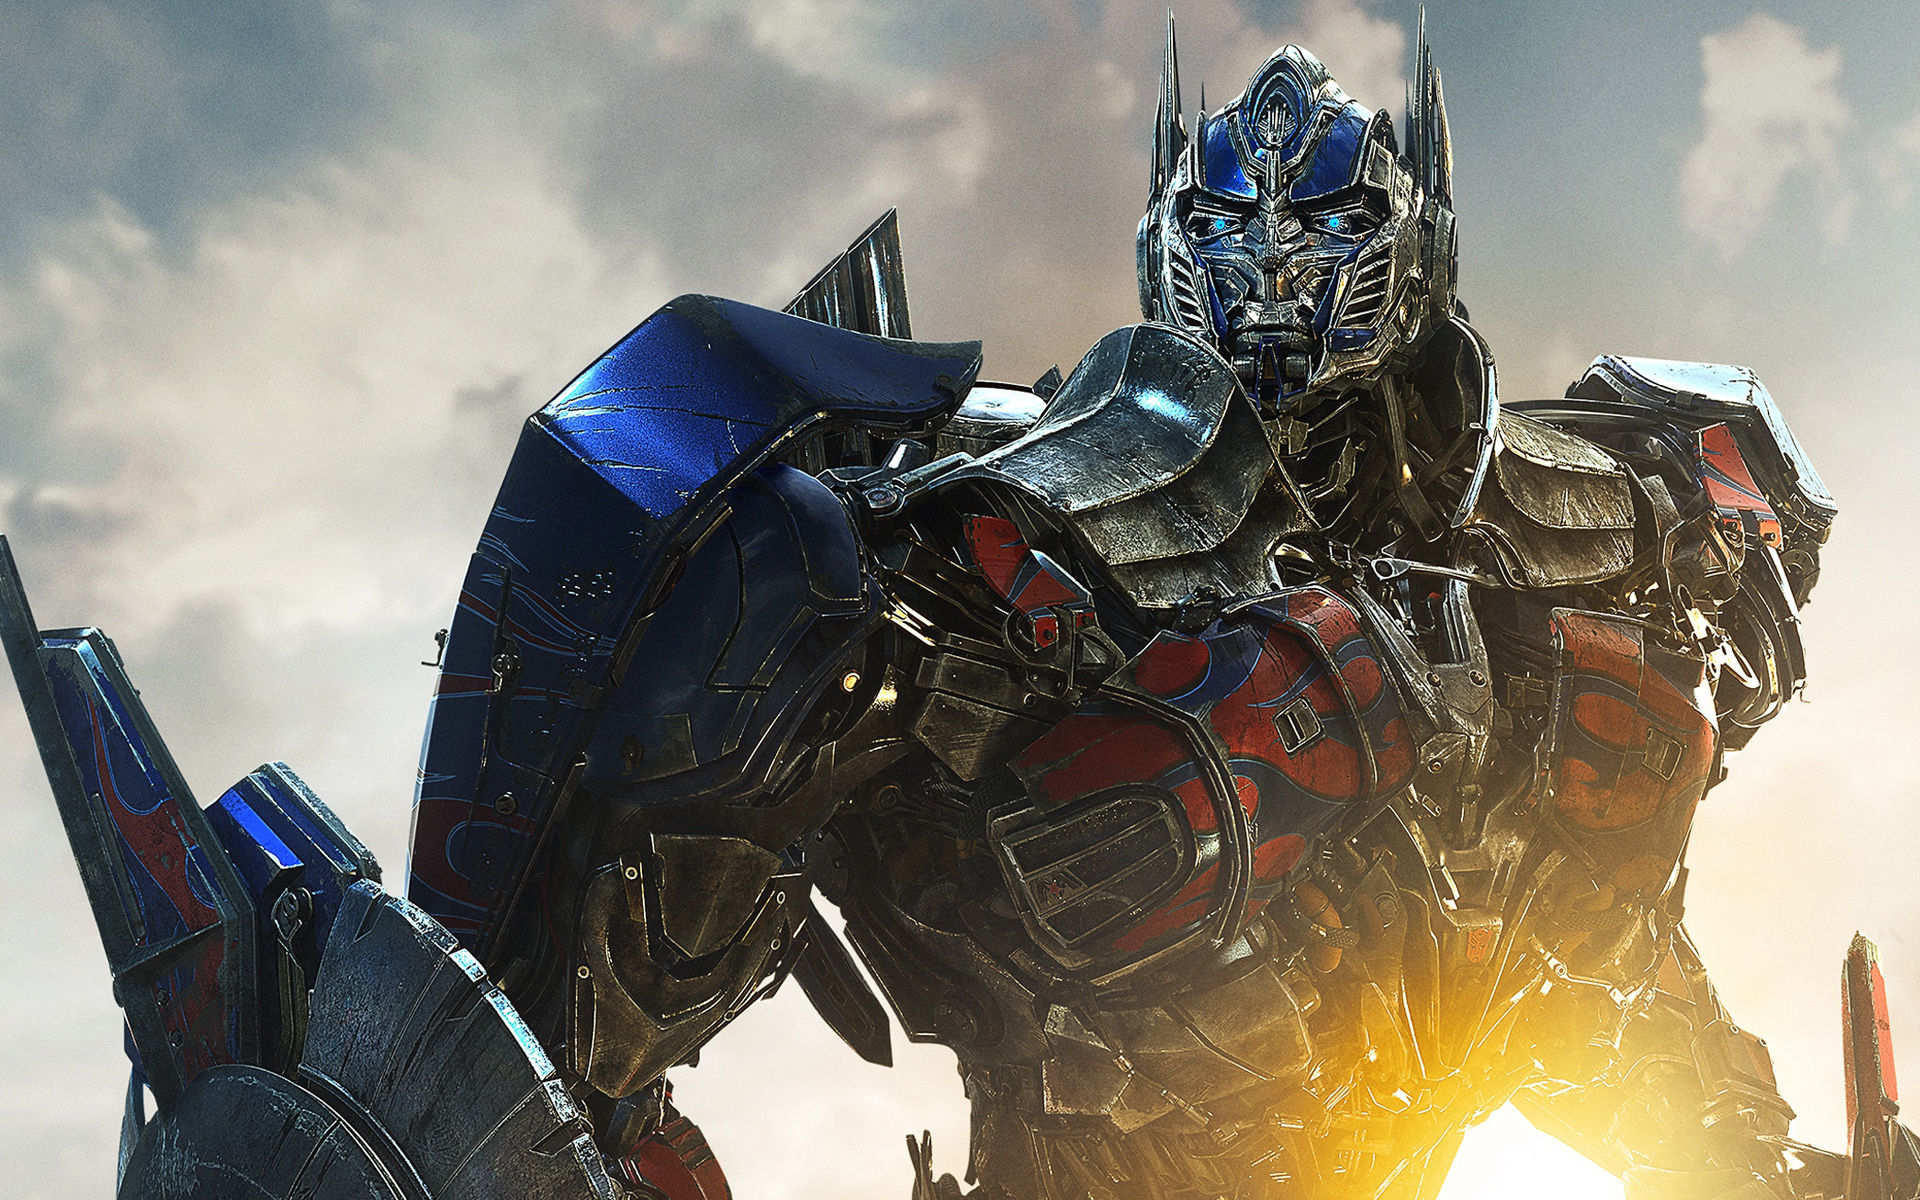 Transformers Age of Extinction Optimus Prime 829.9 Kb